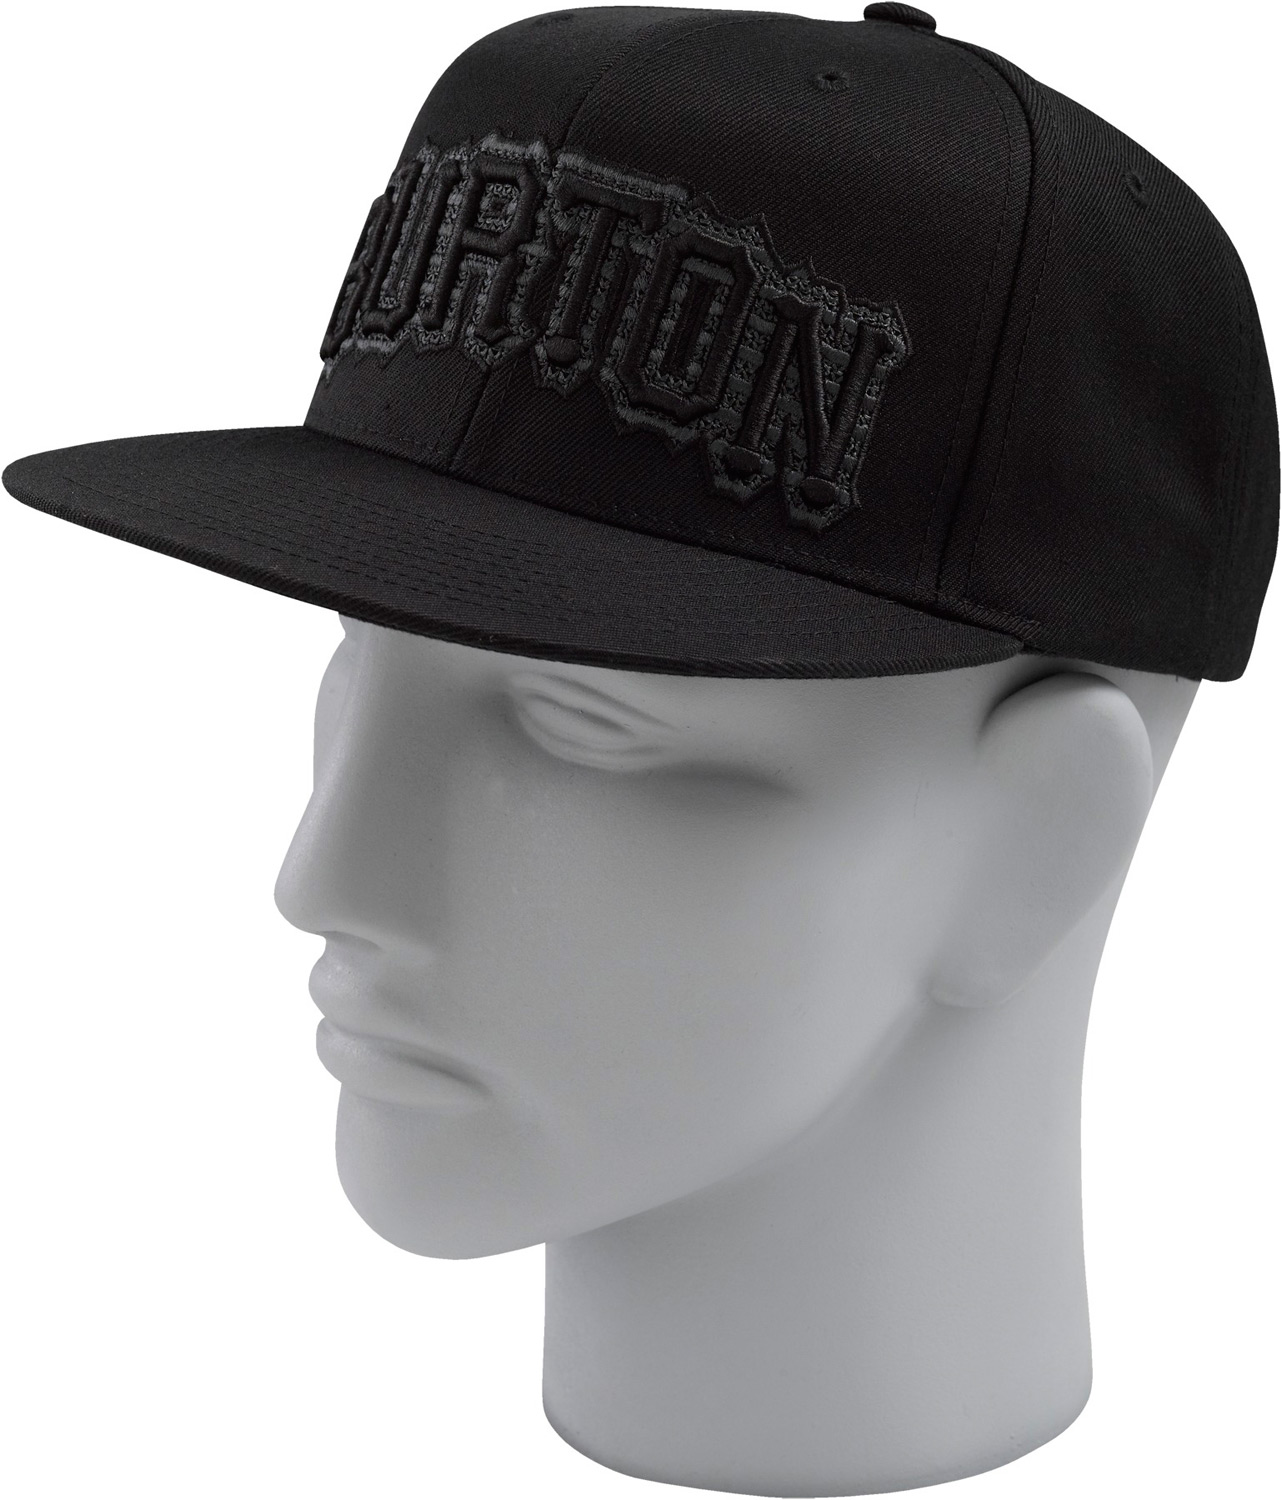 Snowboard Up your street cred and your snowboarding cred with this Burton Bato Cap. The Flat Bill style hat features Word Mark Embroidery and an acrylic and wool blended material for added comfort and durability. With a Snap Back design and large Burton lettering on the front, this baseball cap is perfect for class, ball games and just chillin' with your buddies.* 80% Acrylic, 20% Wool * Snap Back * Word Mark Embroidery * Flat Visor - $15.95